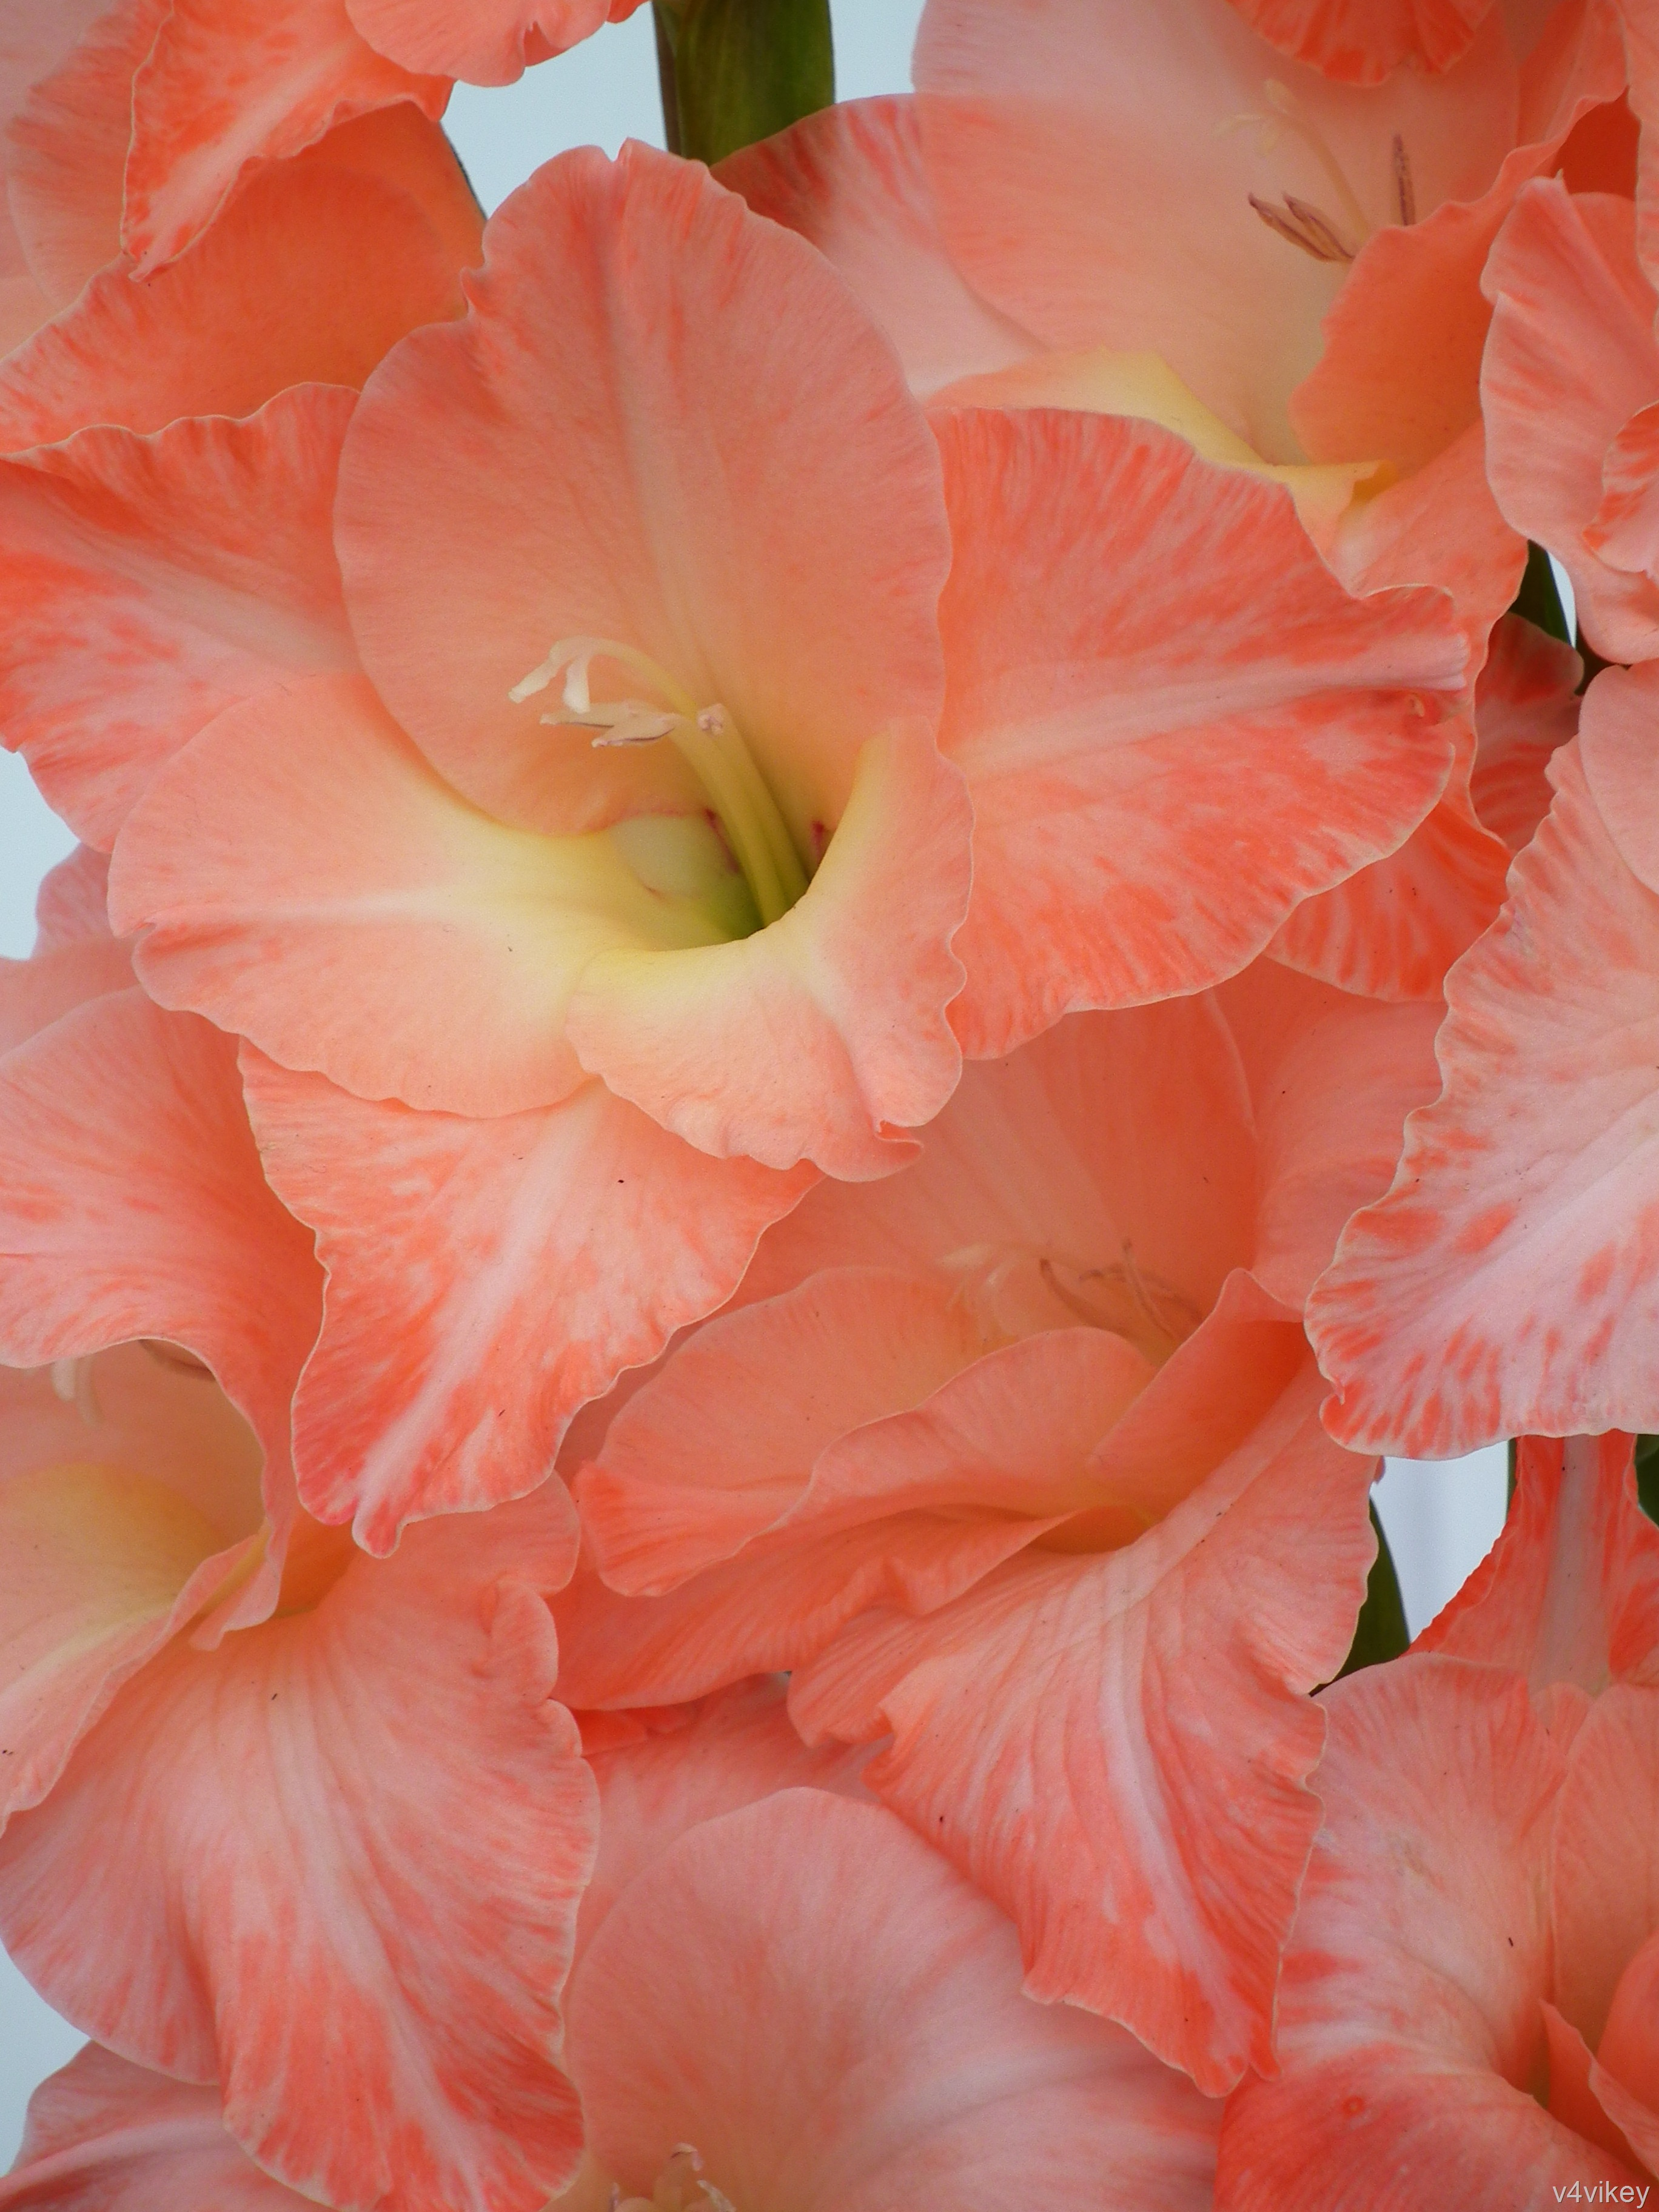 The Gladiolus flower signifies remembrance